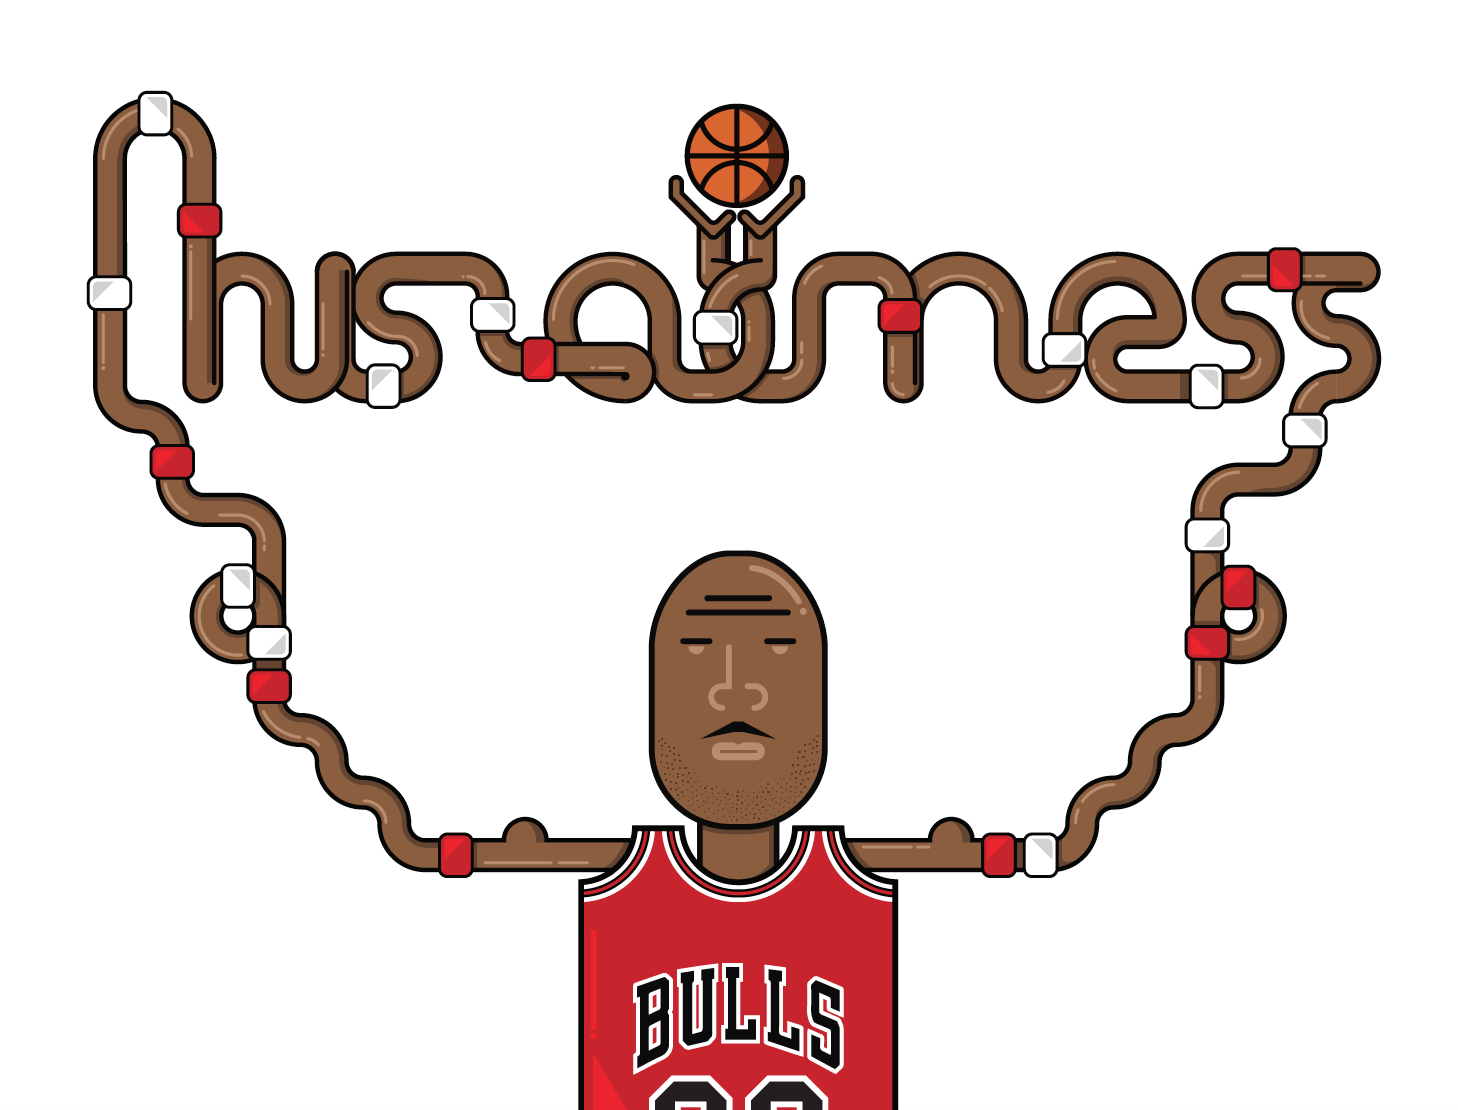 Michael Jordan (His Airness)